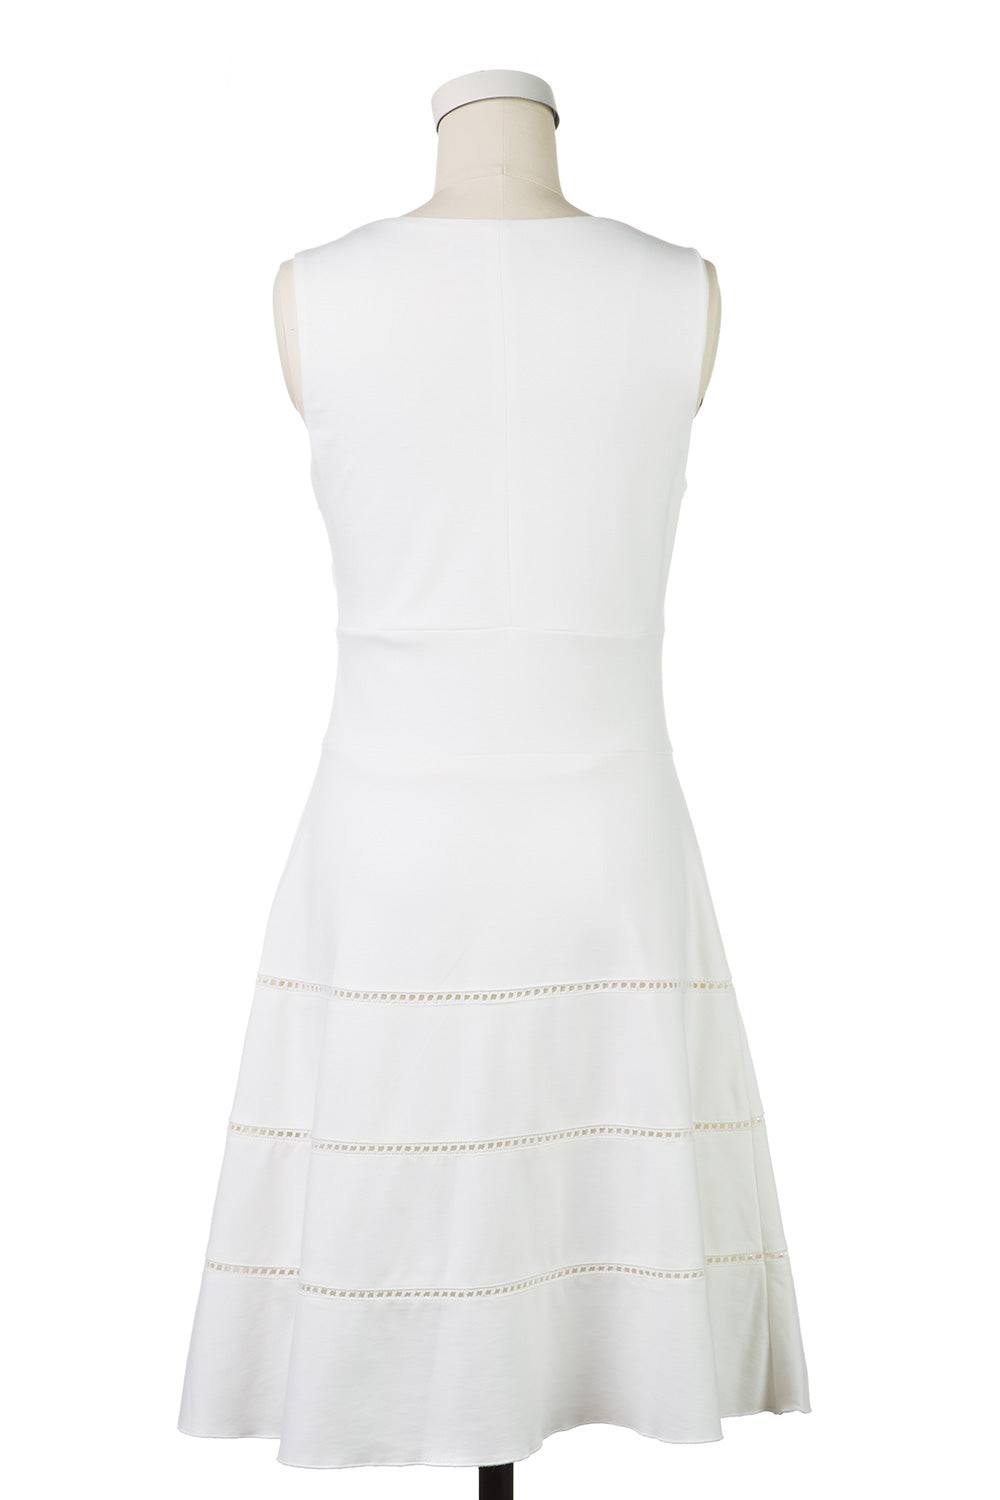 Type 1 Fling Dress